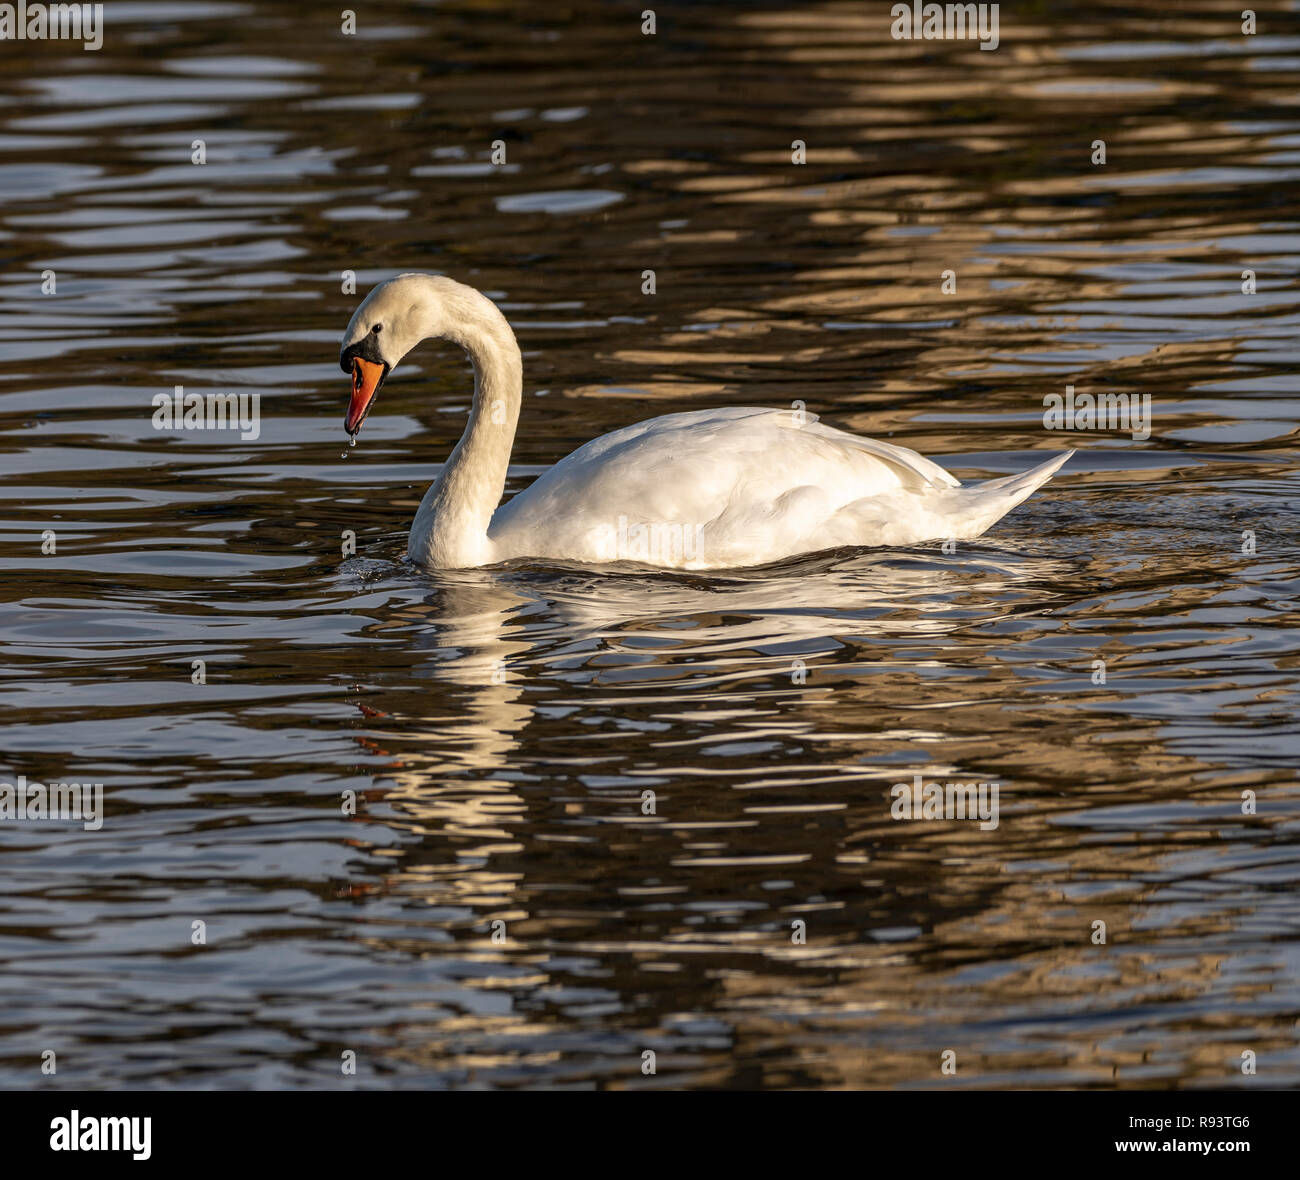 Swans at the Swan sanctuary on the bank of the River Severn in Worcester, UK Stock Photo